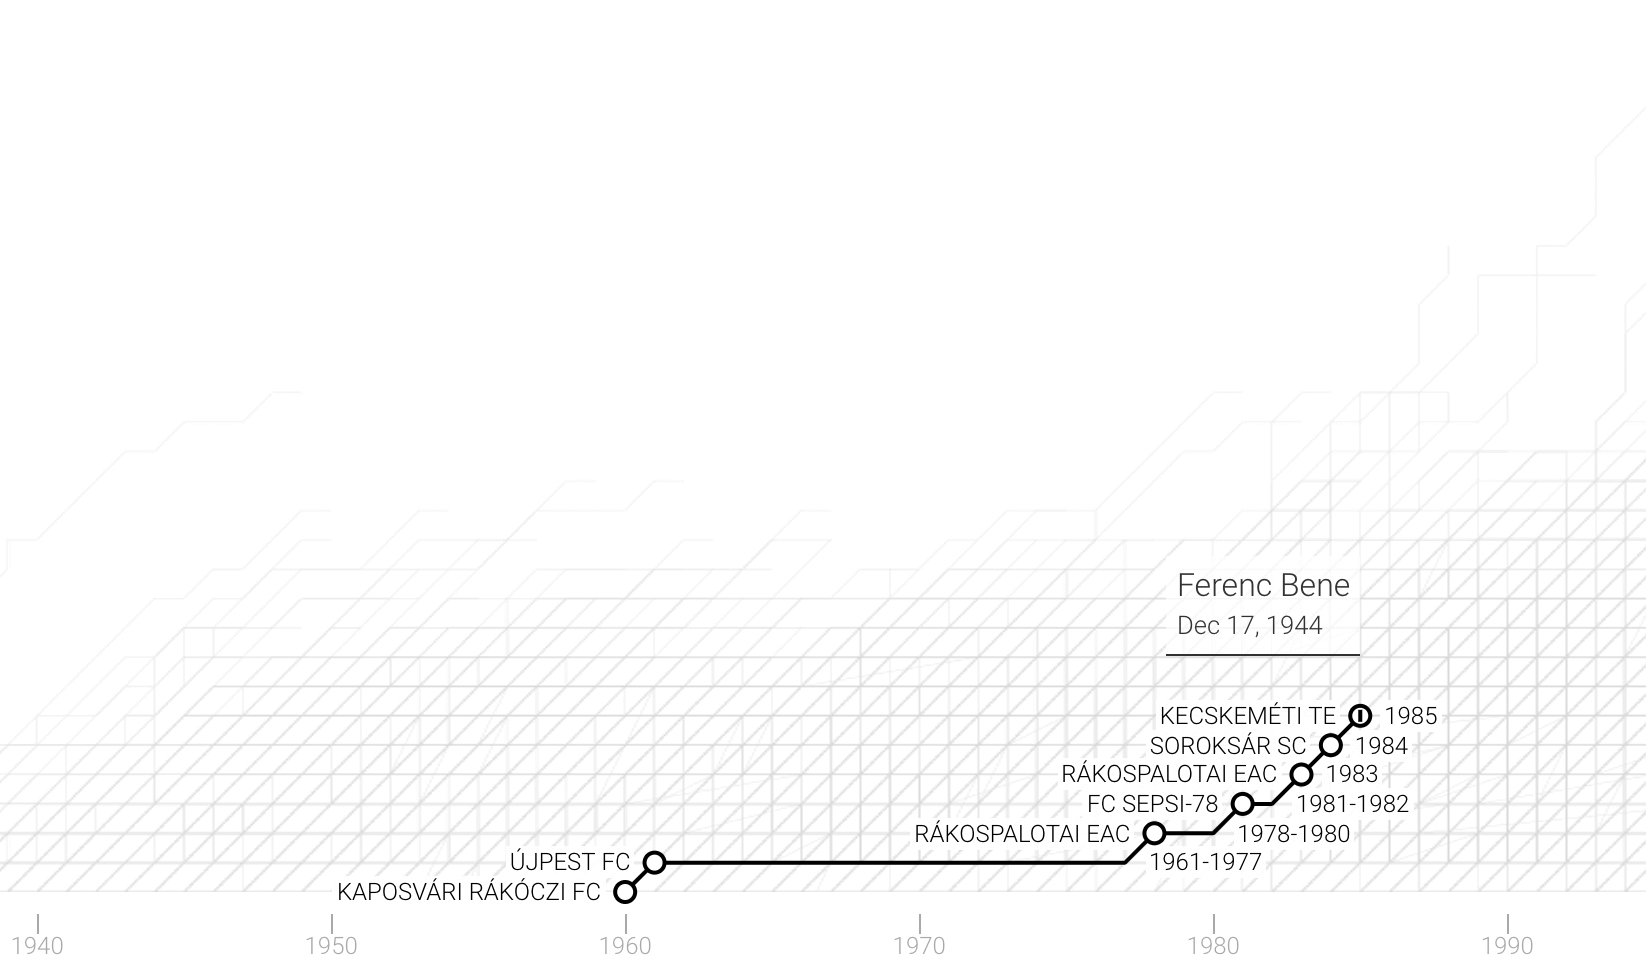 La carriera di Ferenc Bene in un grafico